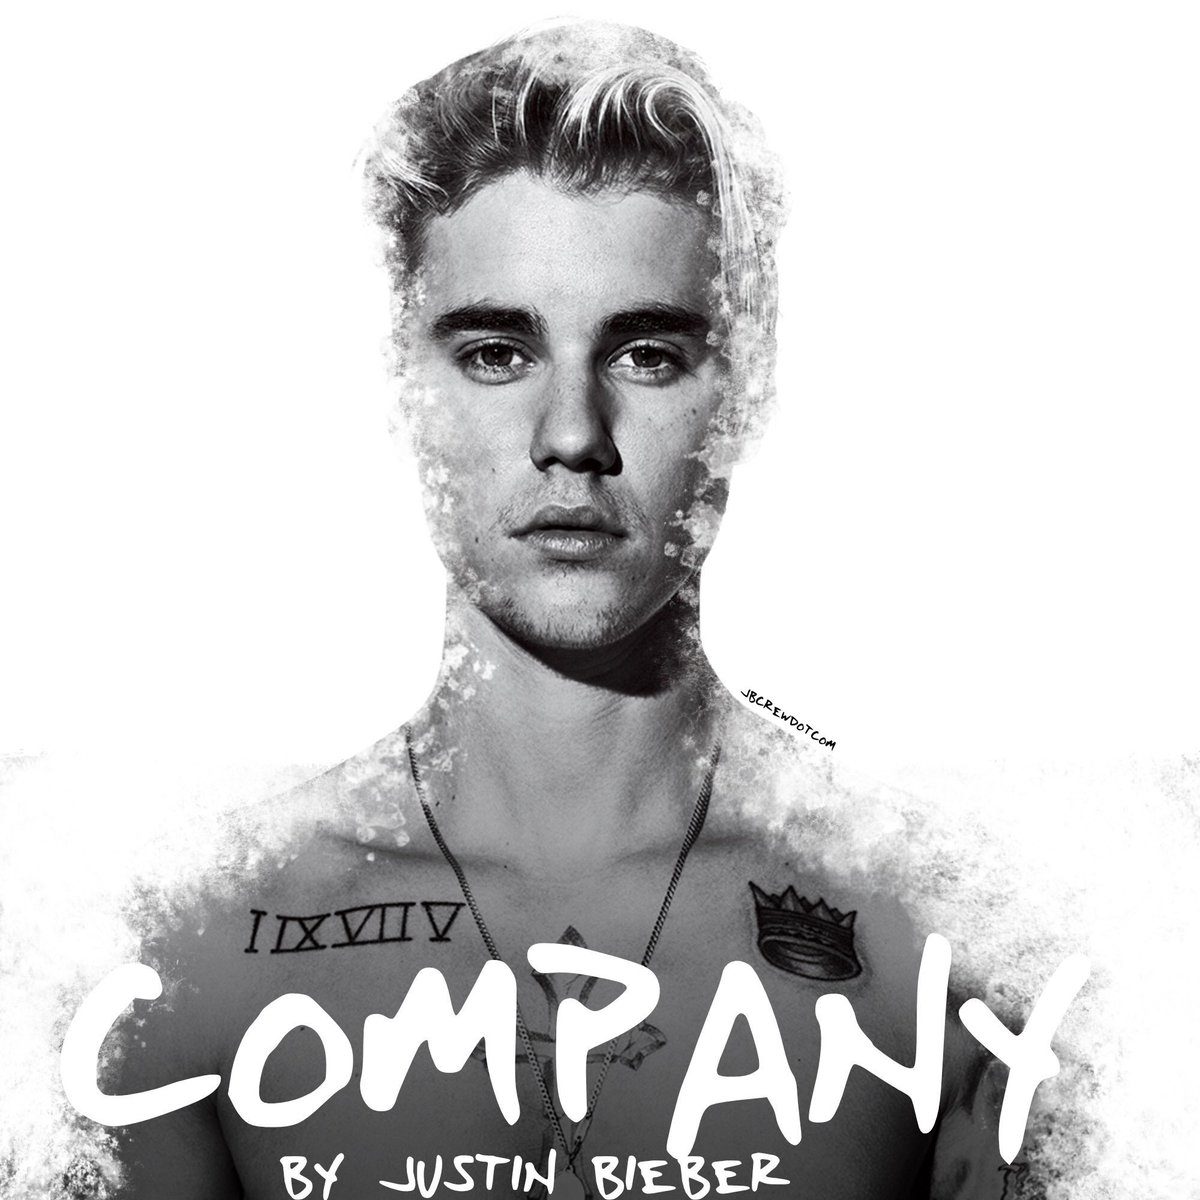 "#JacaTop20 NEW ENTRY   Today we welcome @justinbieber onto with chart with ""Company"" at No.18 https://t.co/3tIuqd05Gk"